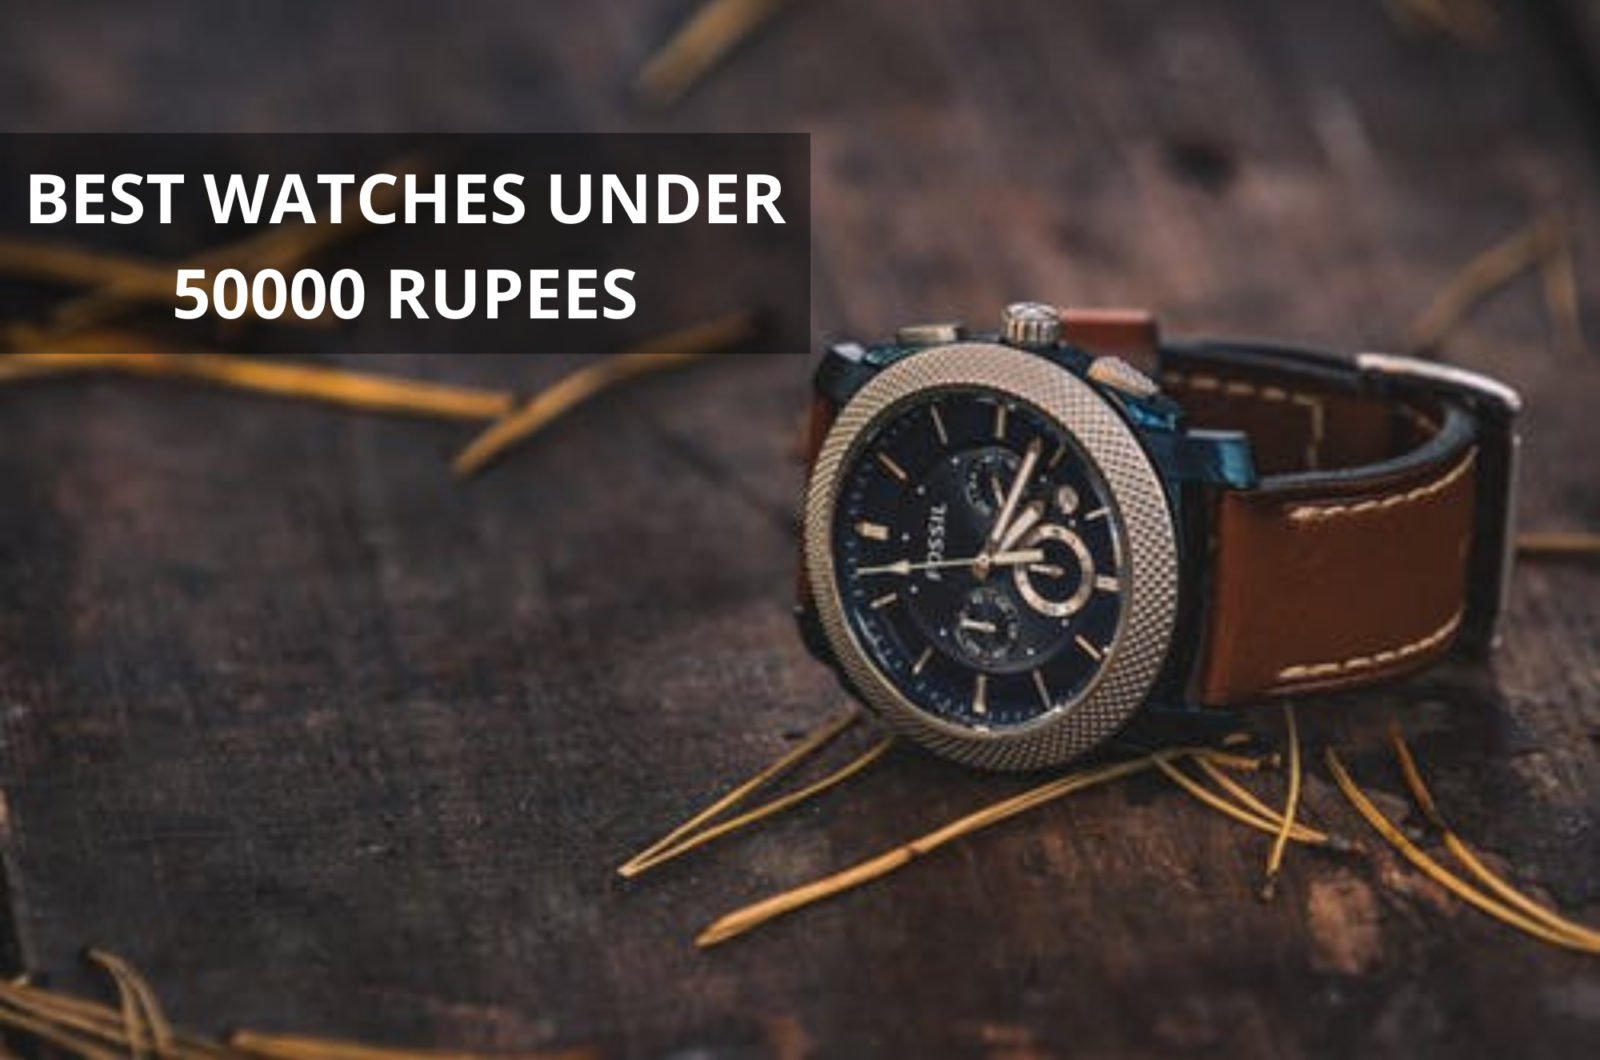 BEST WATCHES UNDER 50000 RUPEES